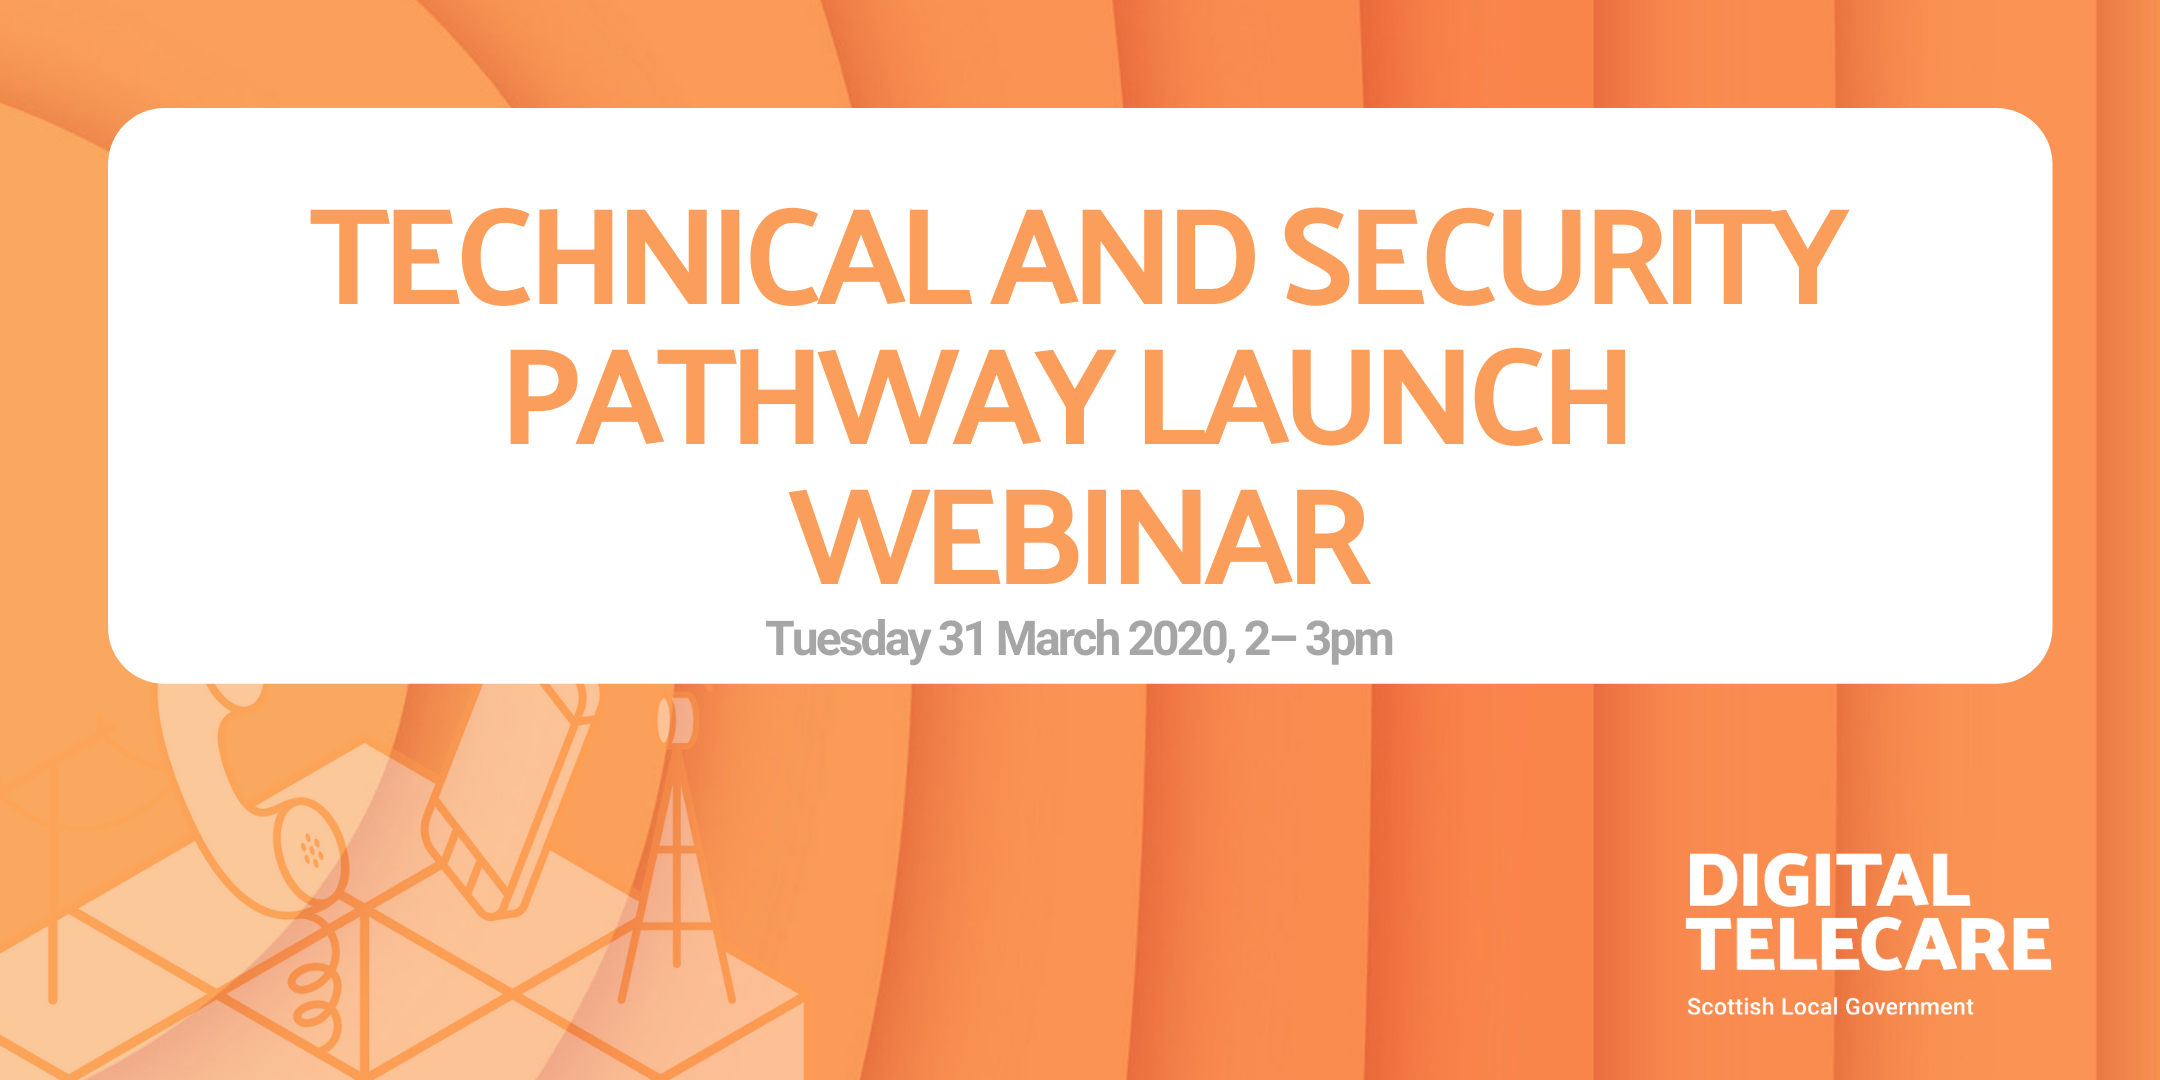 WEBINAR: TECHNICAL AND SECURITY PATHWAY